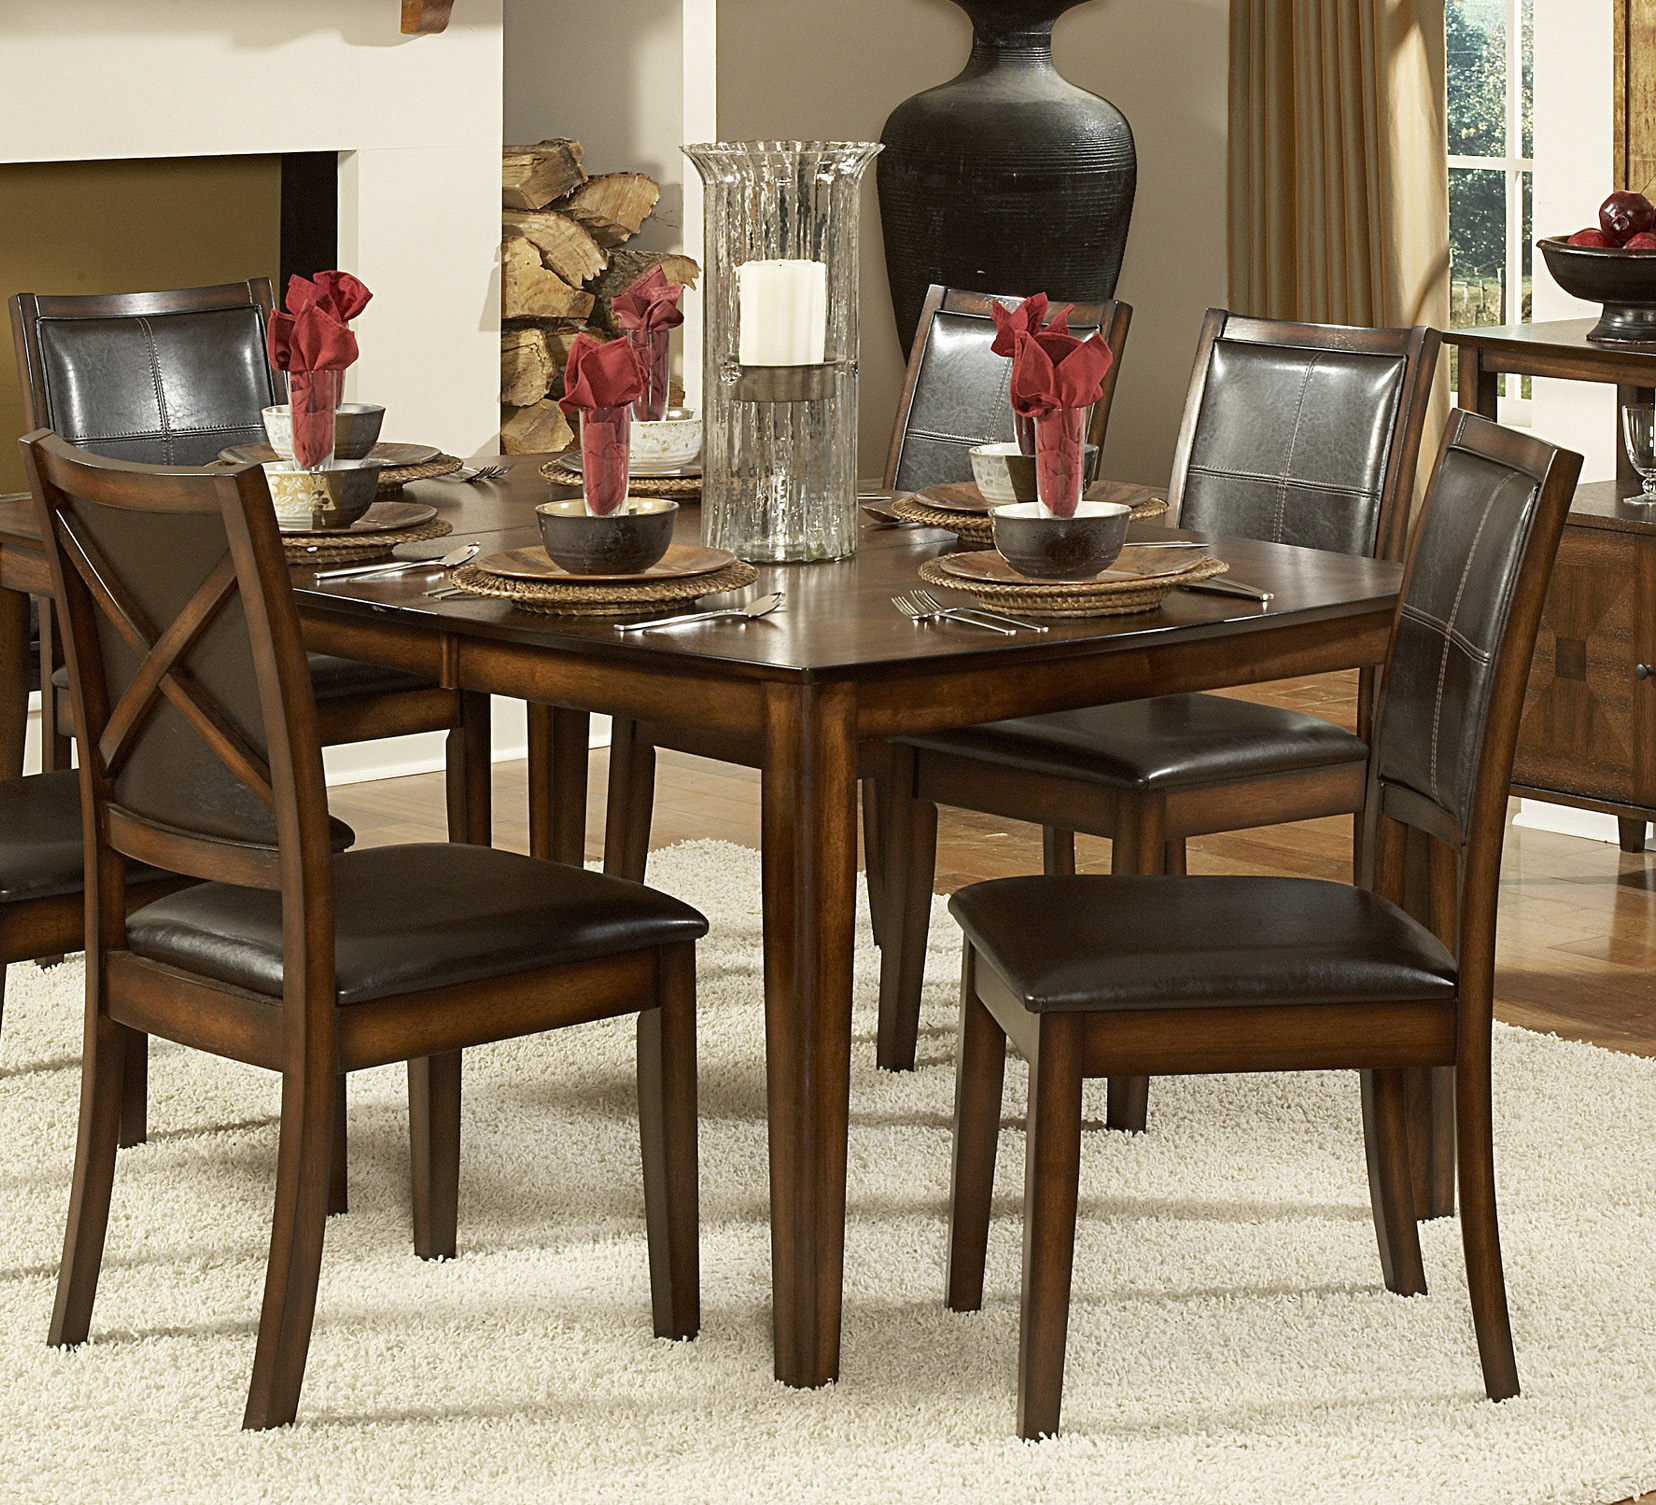 Dining room furniture dallas 28 images formal dining room sets dallas tx dining room home Dining room furniture dallas